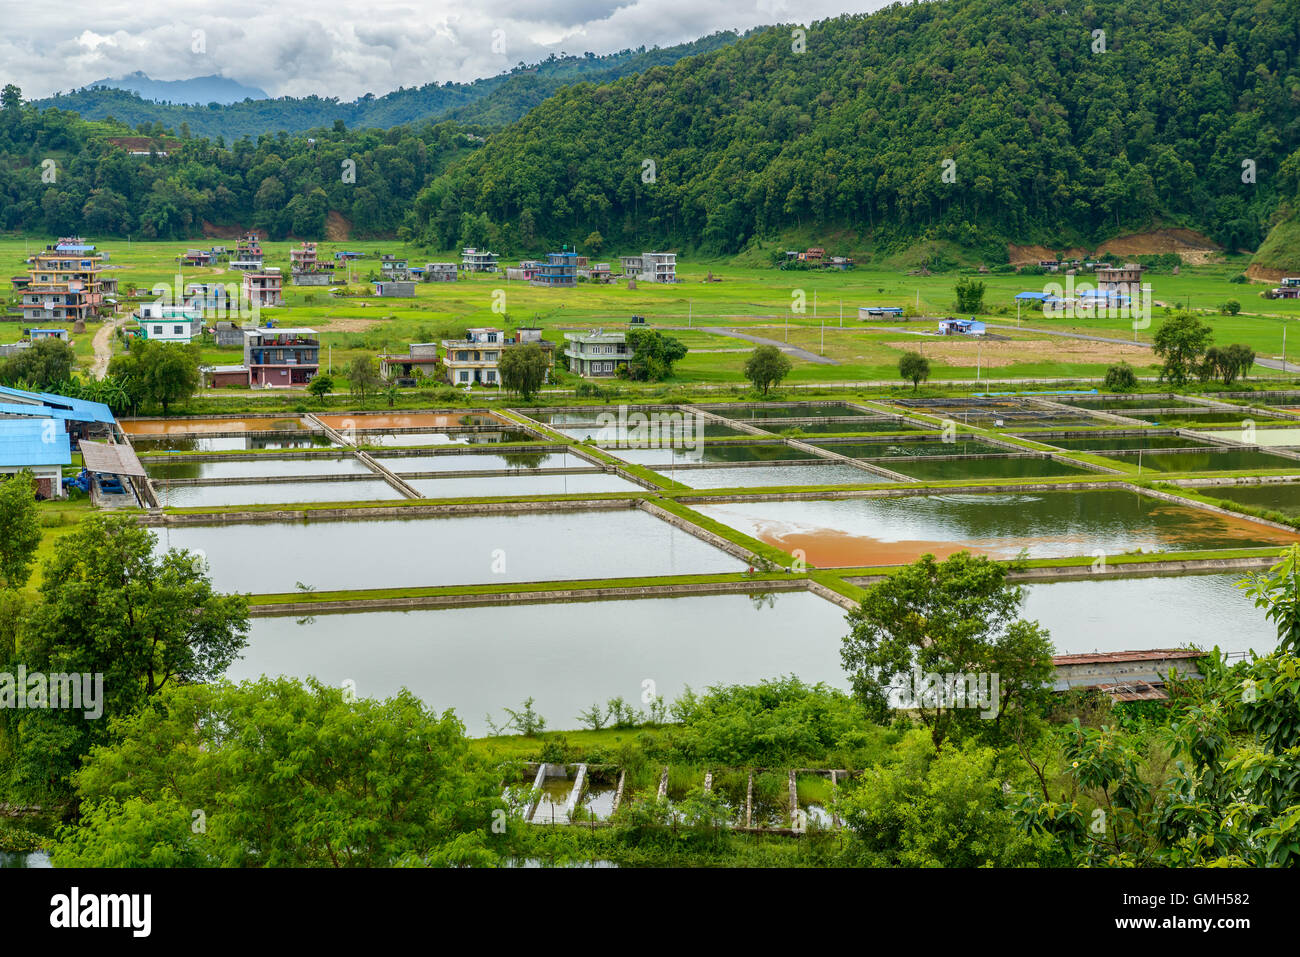 Nepal Agriculture Stock Photos & Nepal Agriculture Stock Images - Alamy